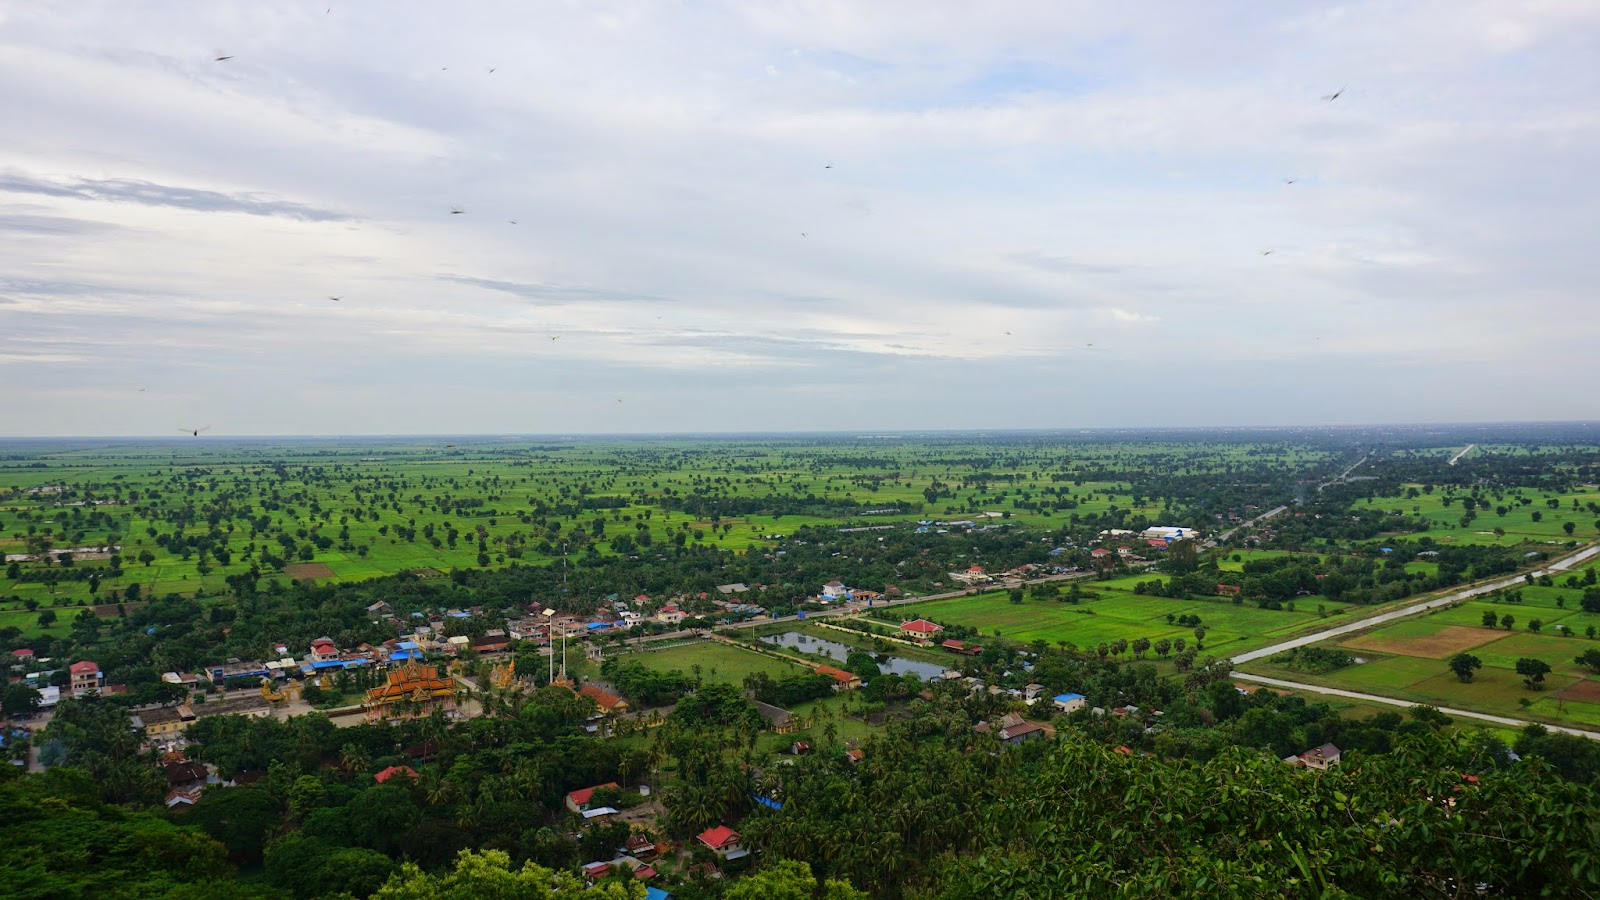 The view from the top of Phnom Sampeau